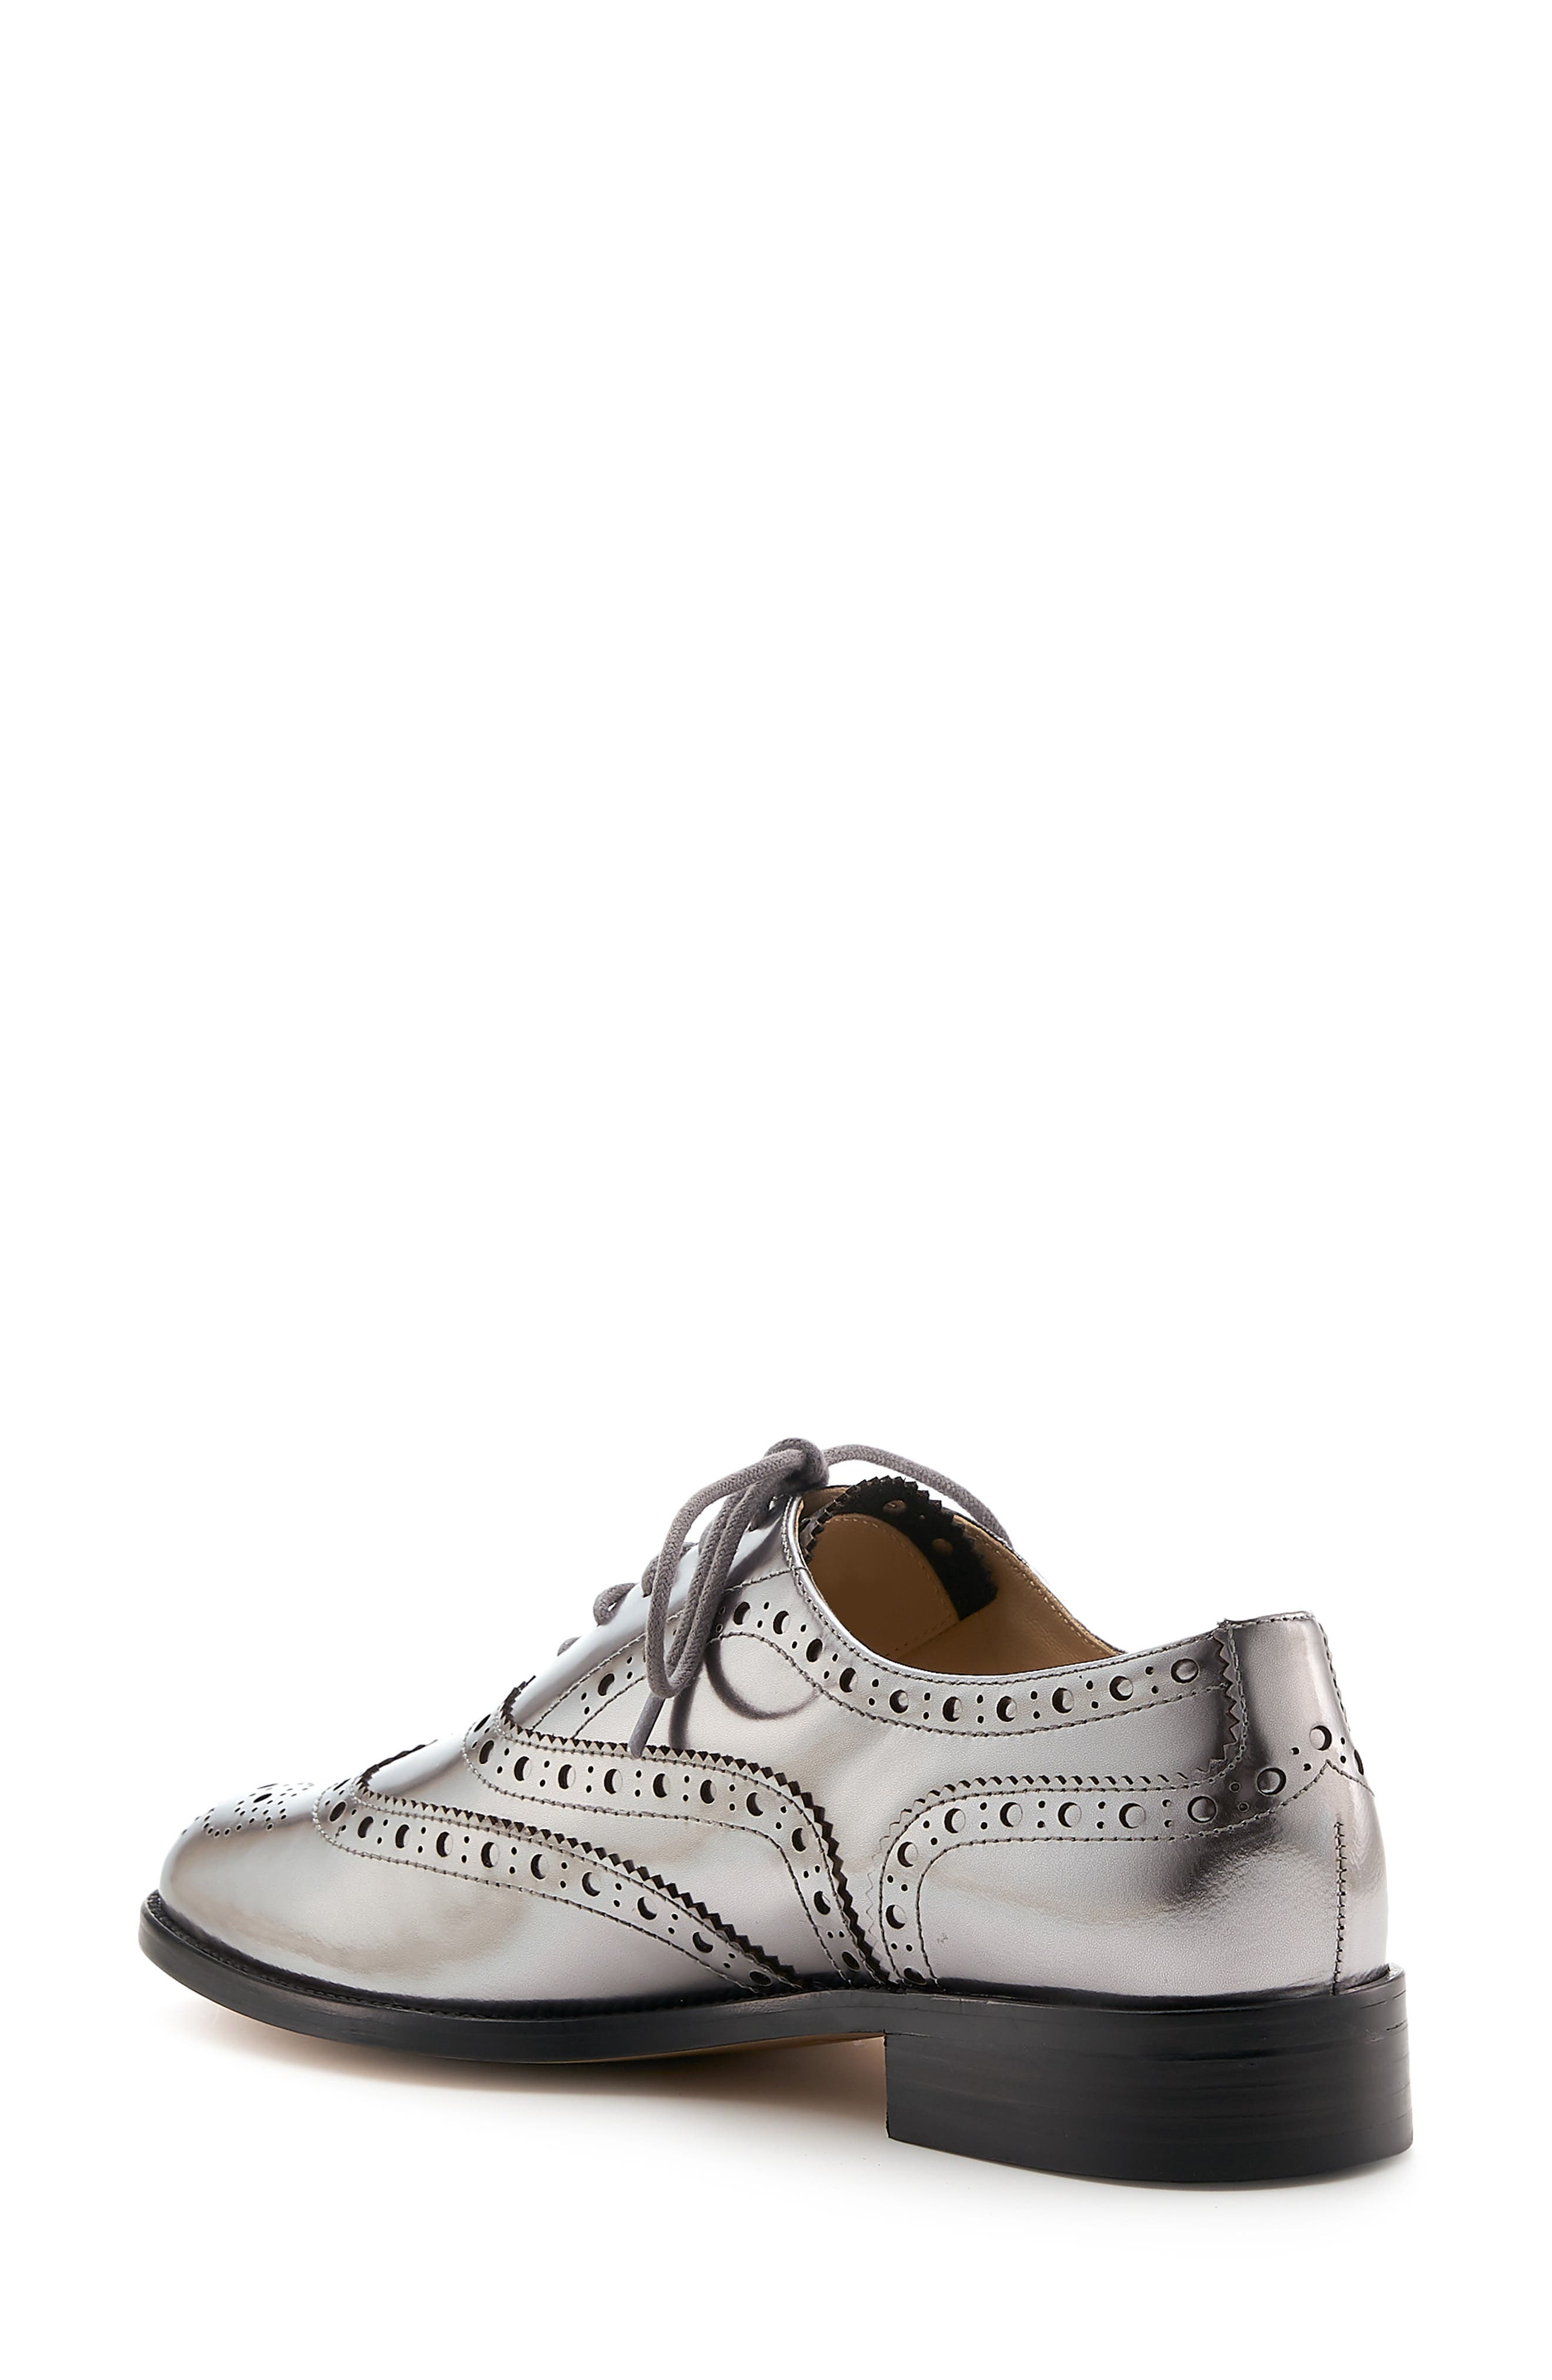 BOTKIER, Calista Metallic Wingtip Oxford, Alternate thumbnail 2, color, PEWTER METALLIC